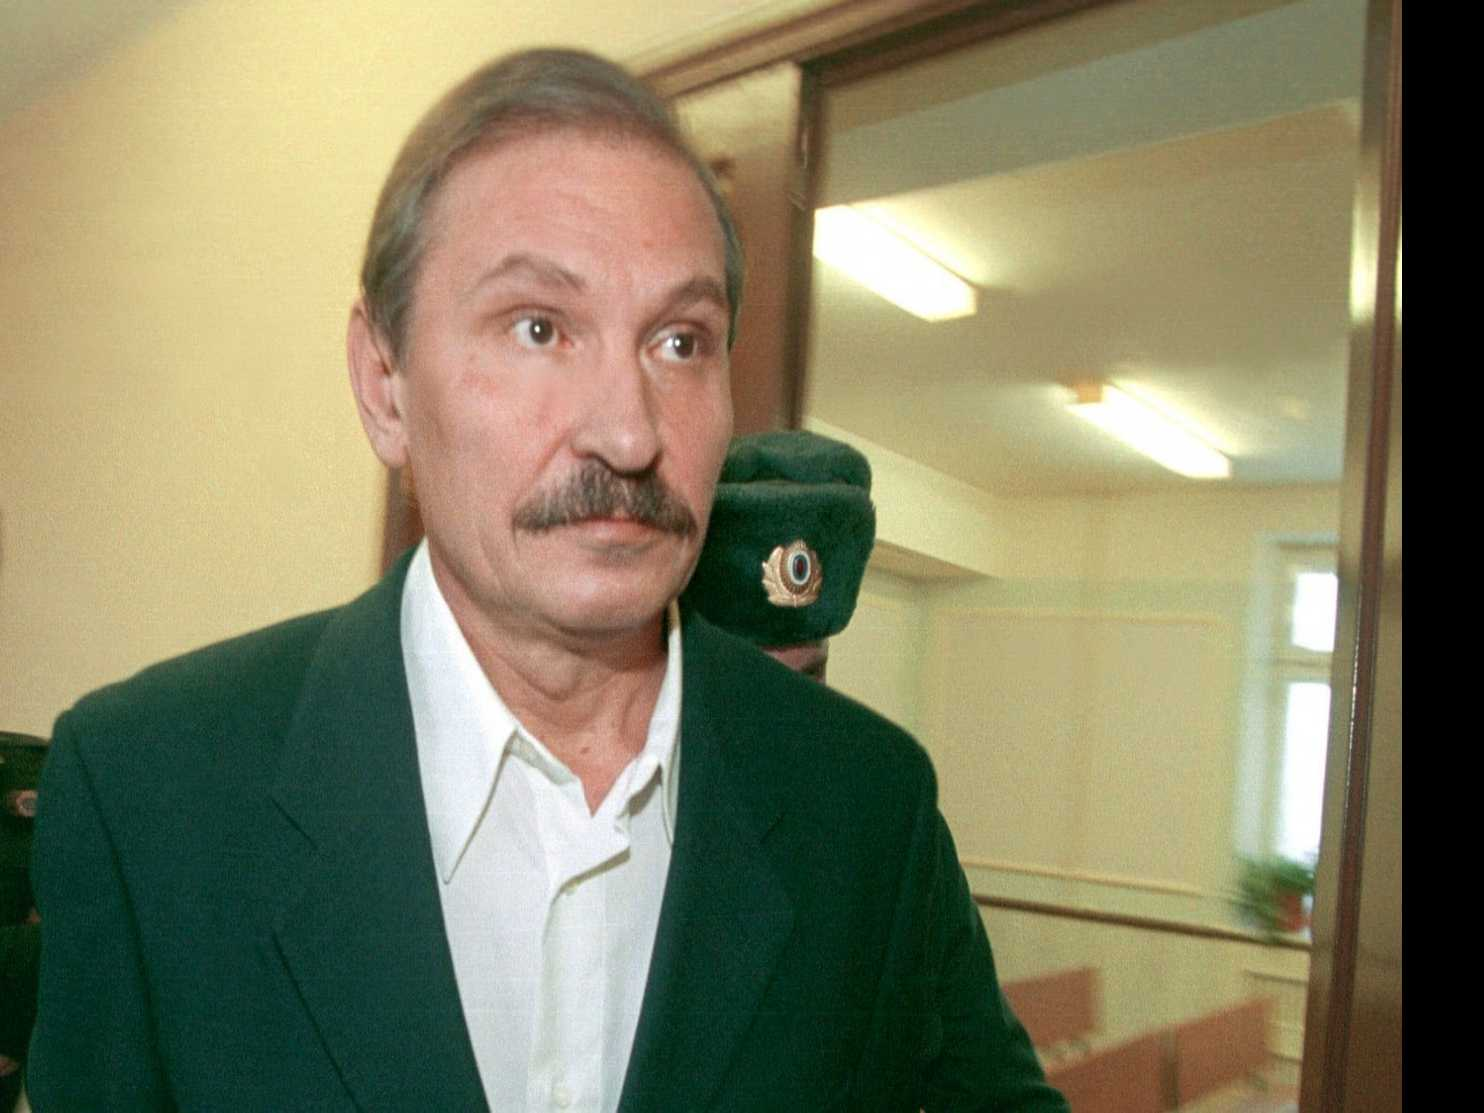 UK Opens Murder Probe into Death of Russian Nikolai Glushkov